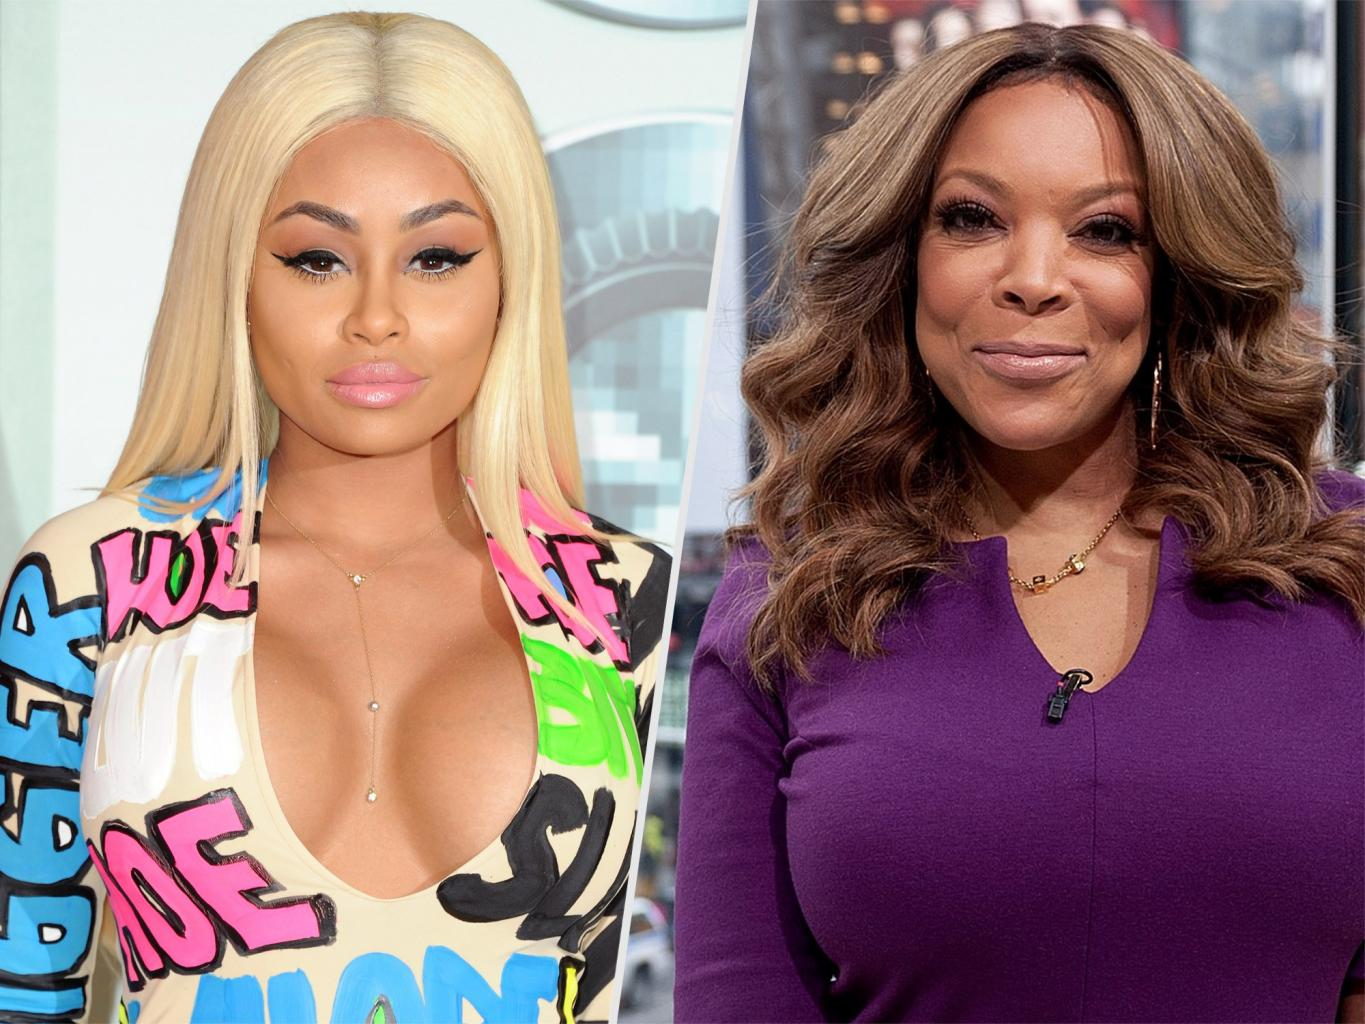 Blac Chyna Fires Back After Wendy Williams Talks About Her Relationship